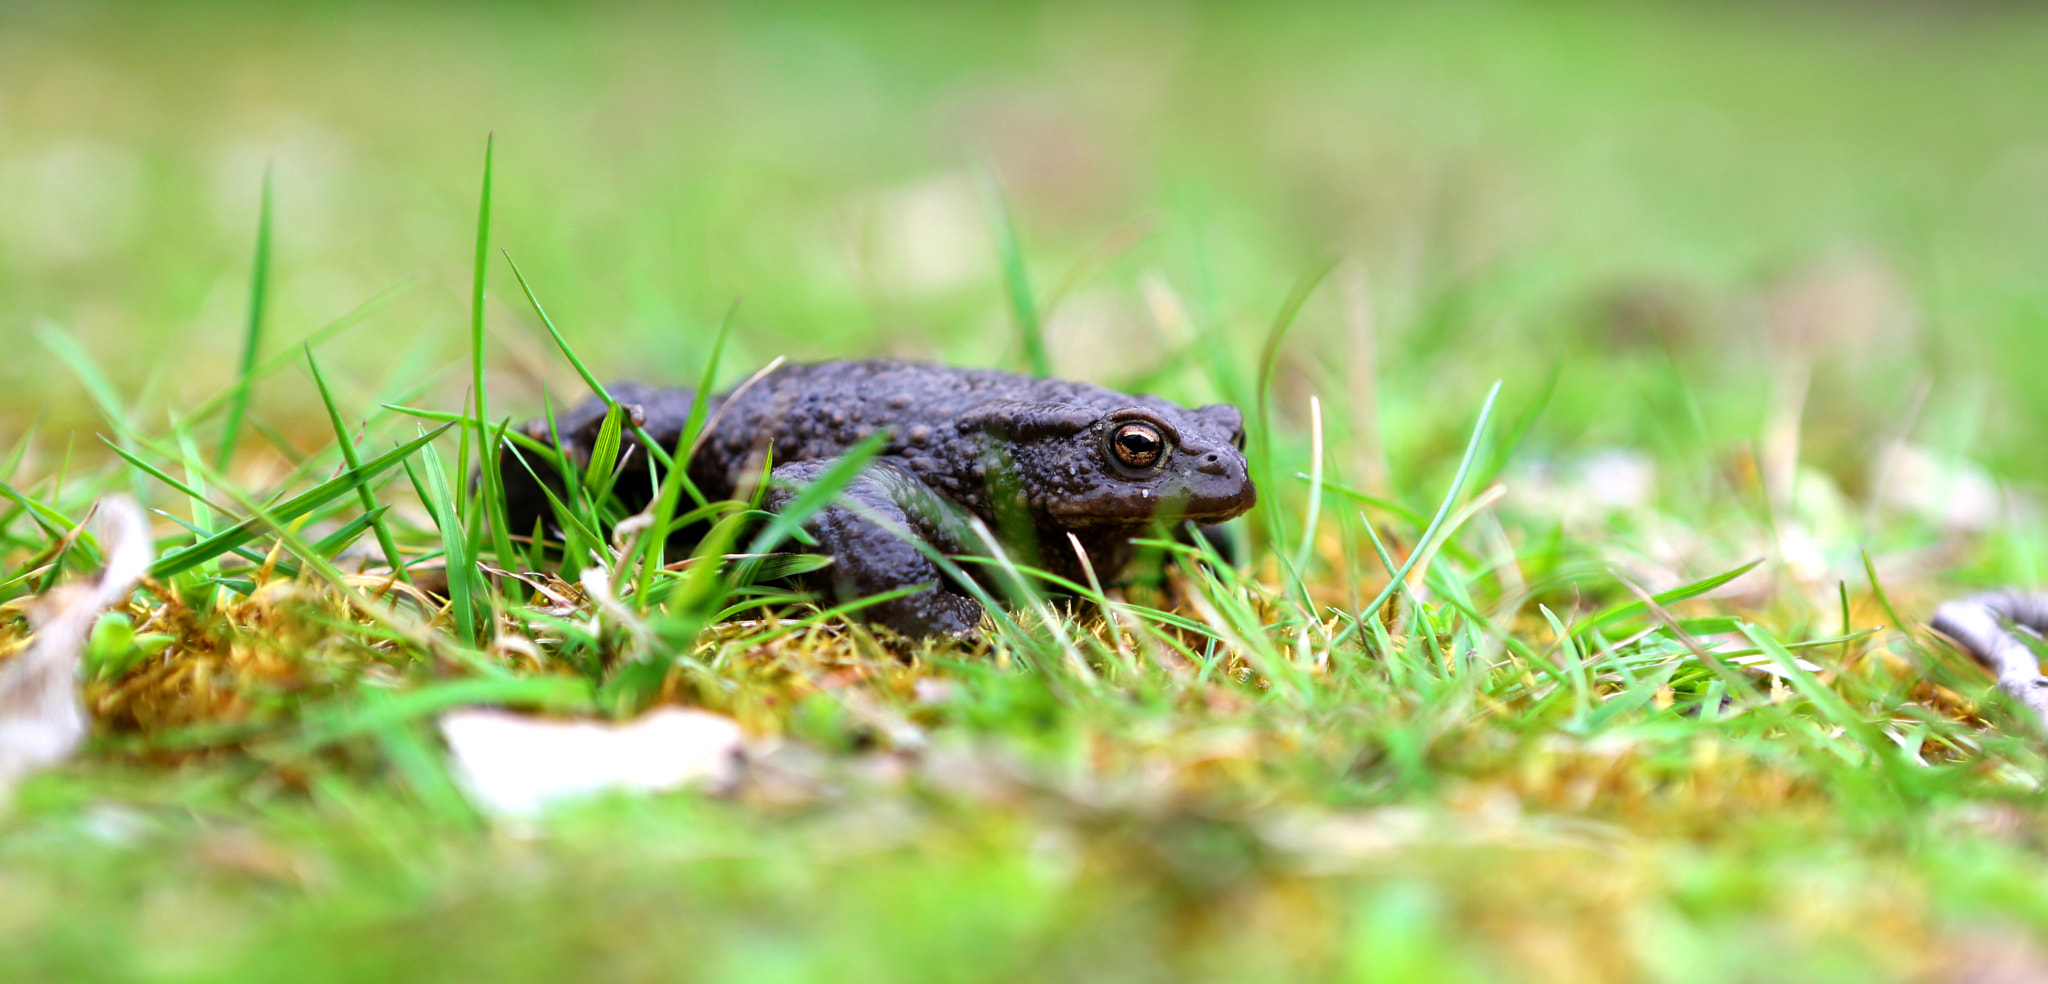 Photograph frog by Martin L. on 500px